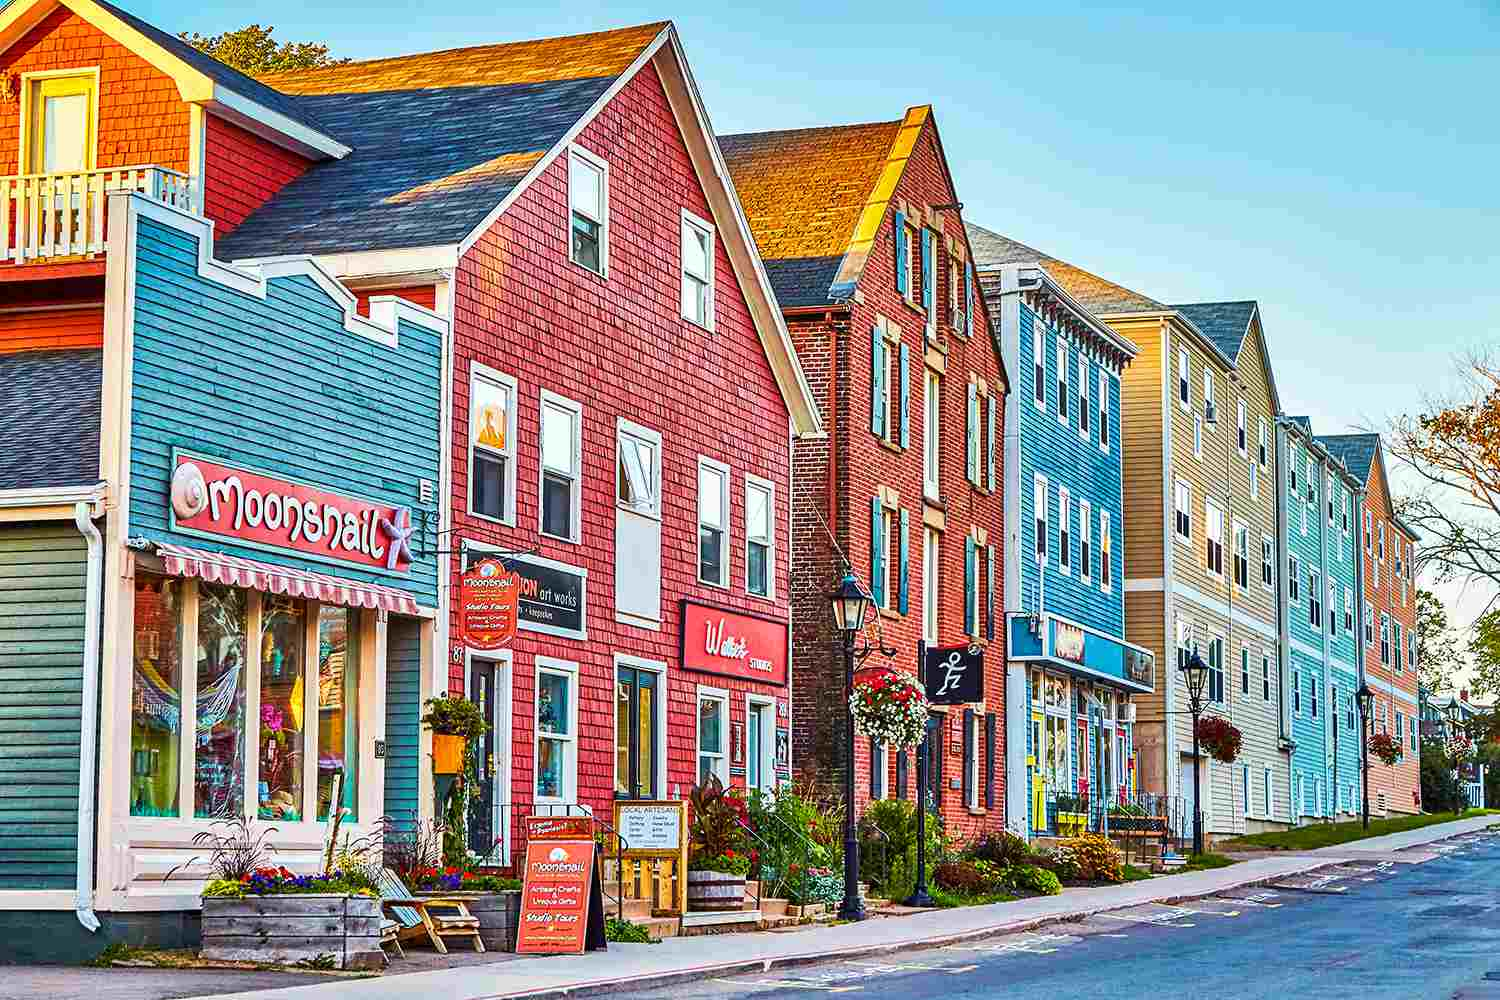 Colourful buildings on streets with shopping in Charlottetown